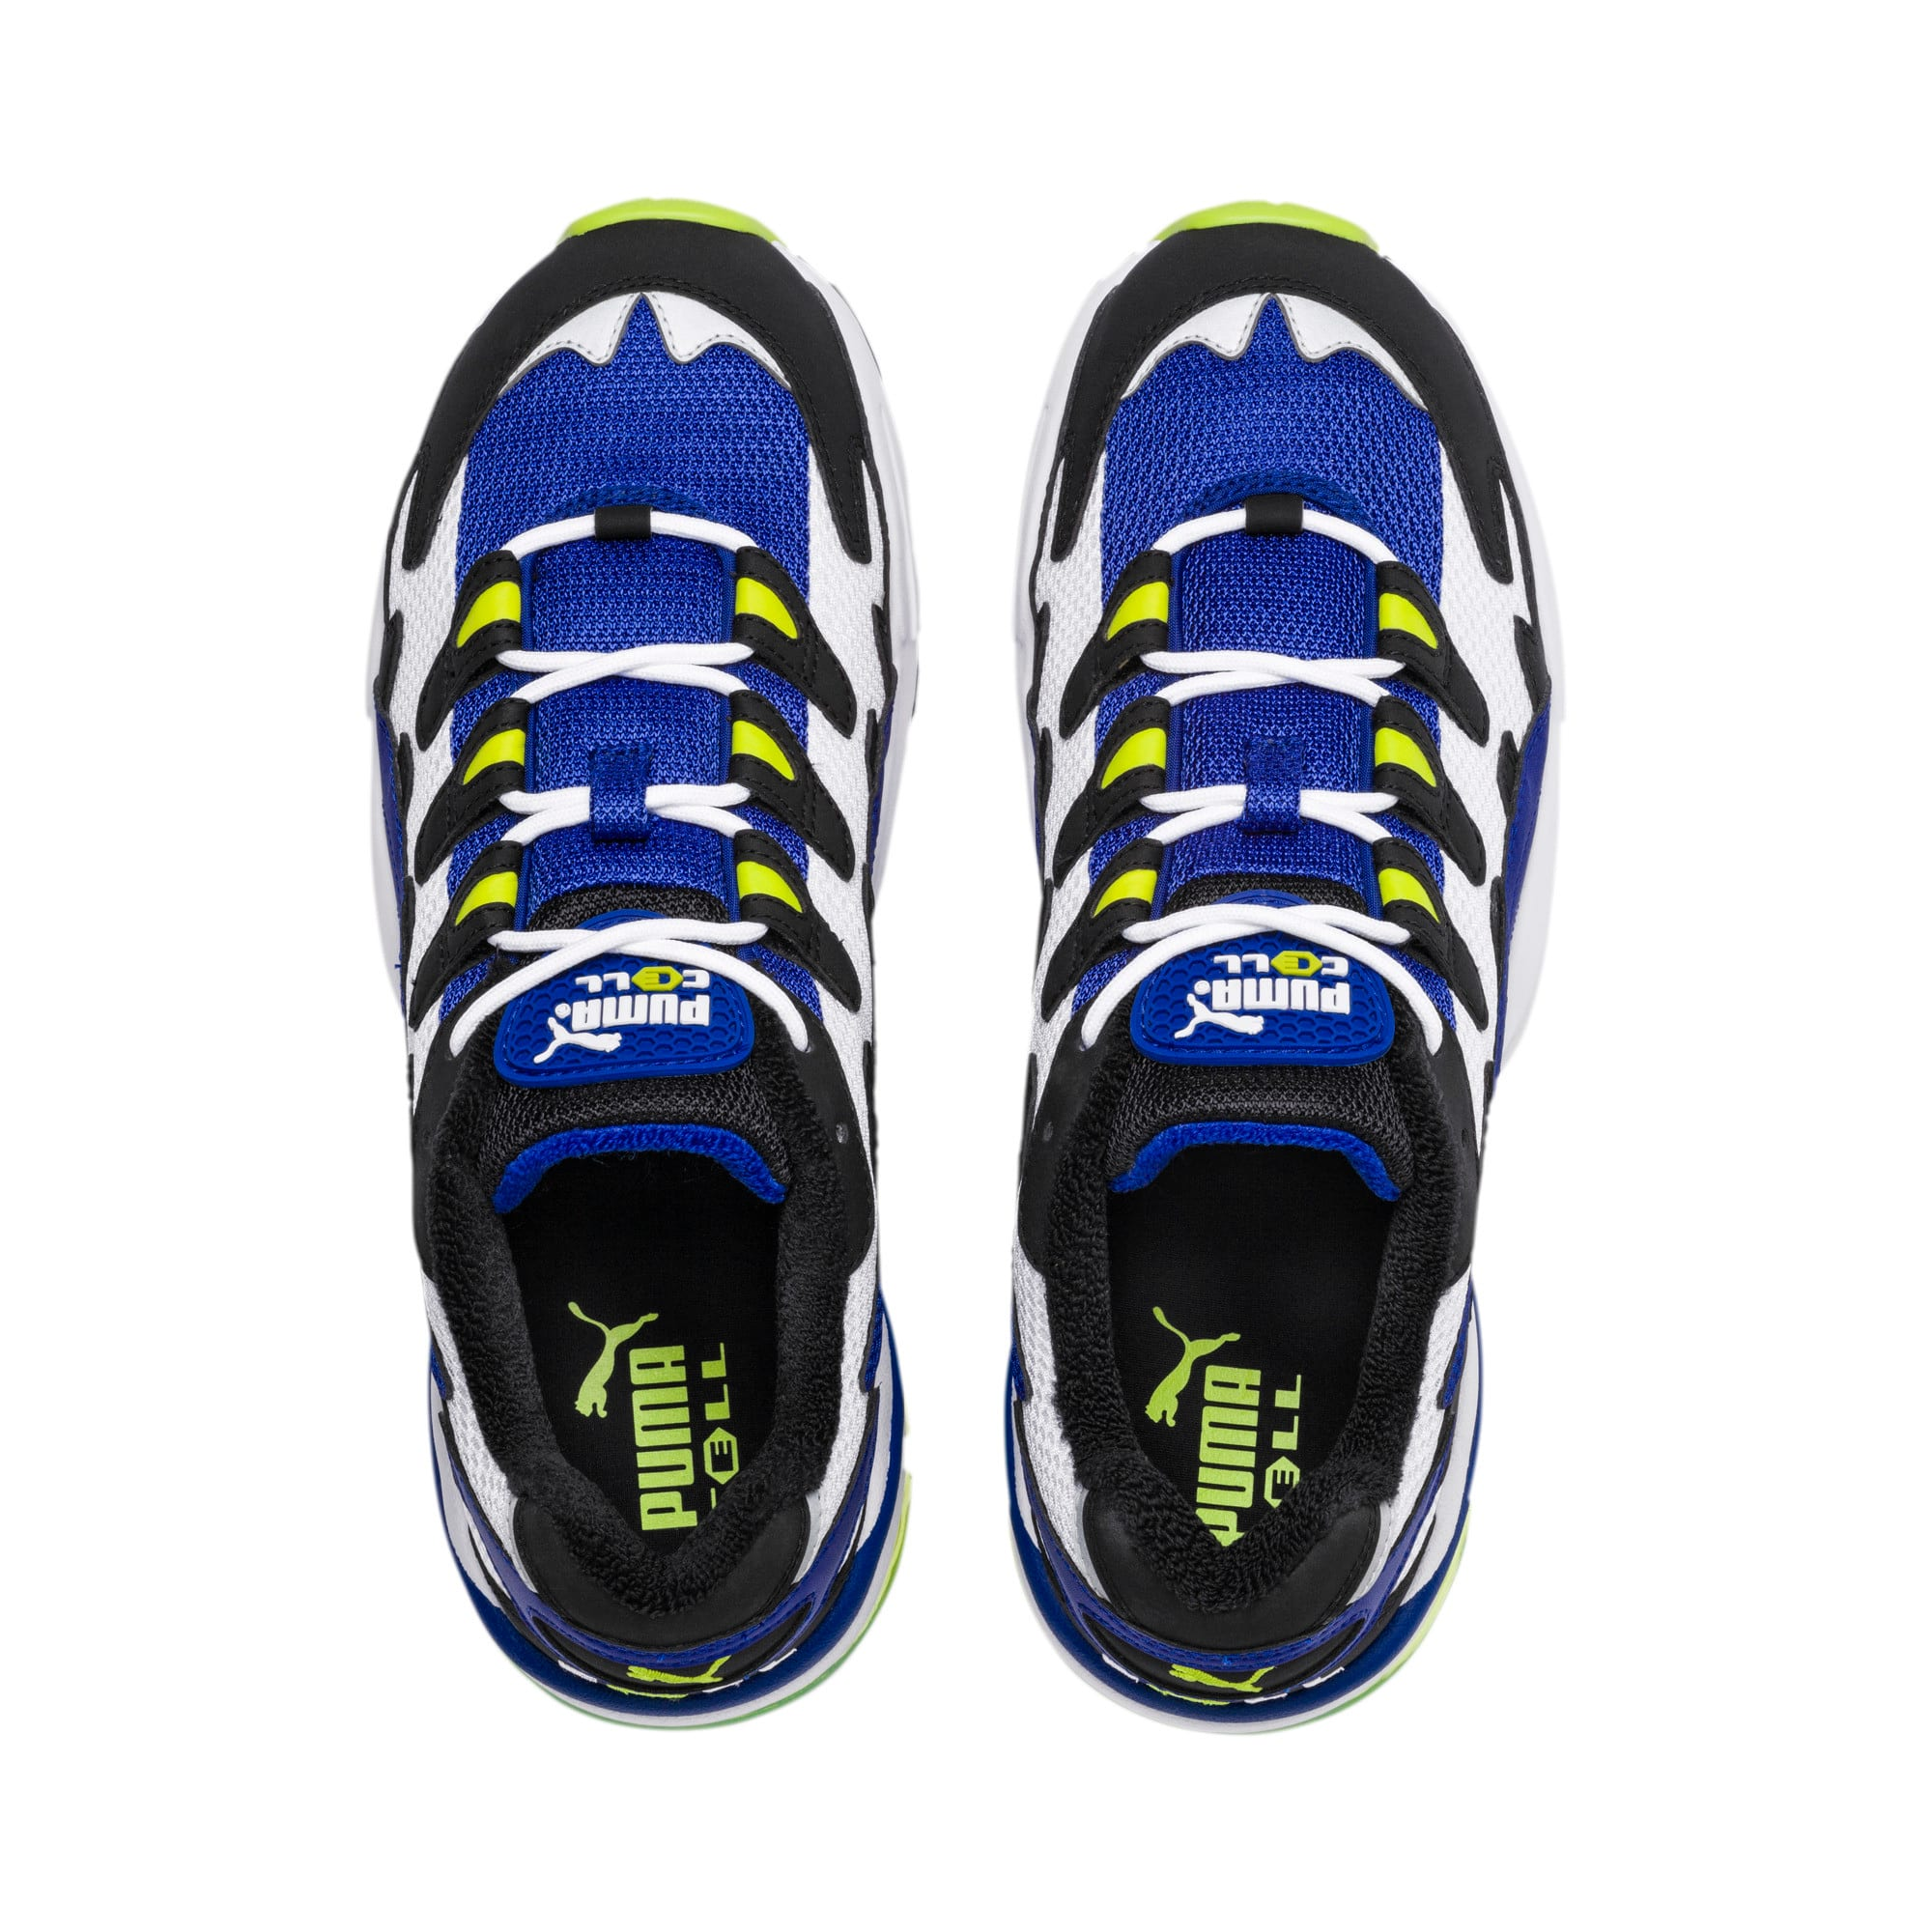 Thumbnail 8 of CELL Alien OG Trainers, Puma Black-Surf The Web, medium-IND